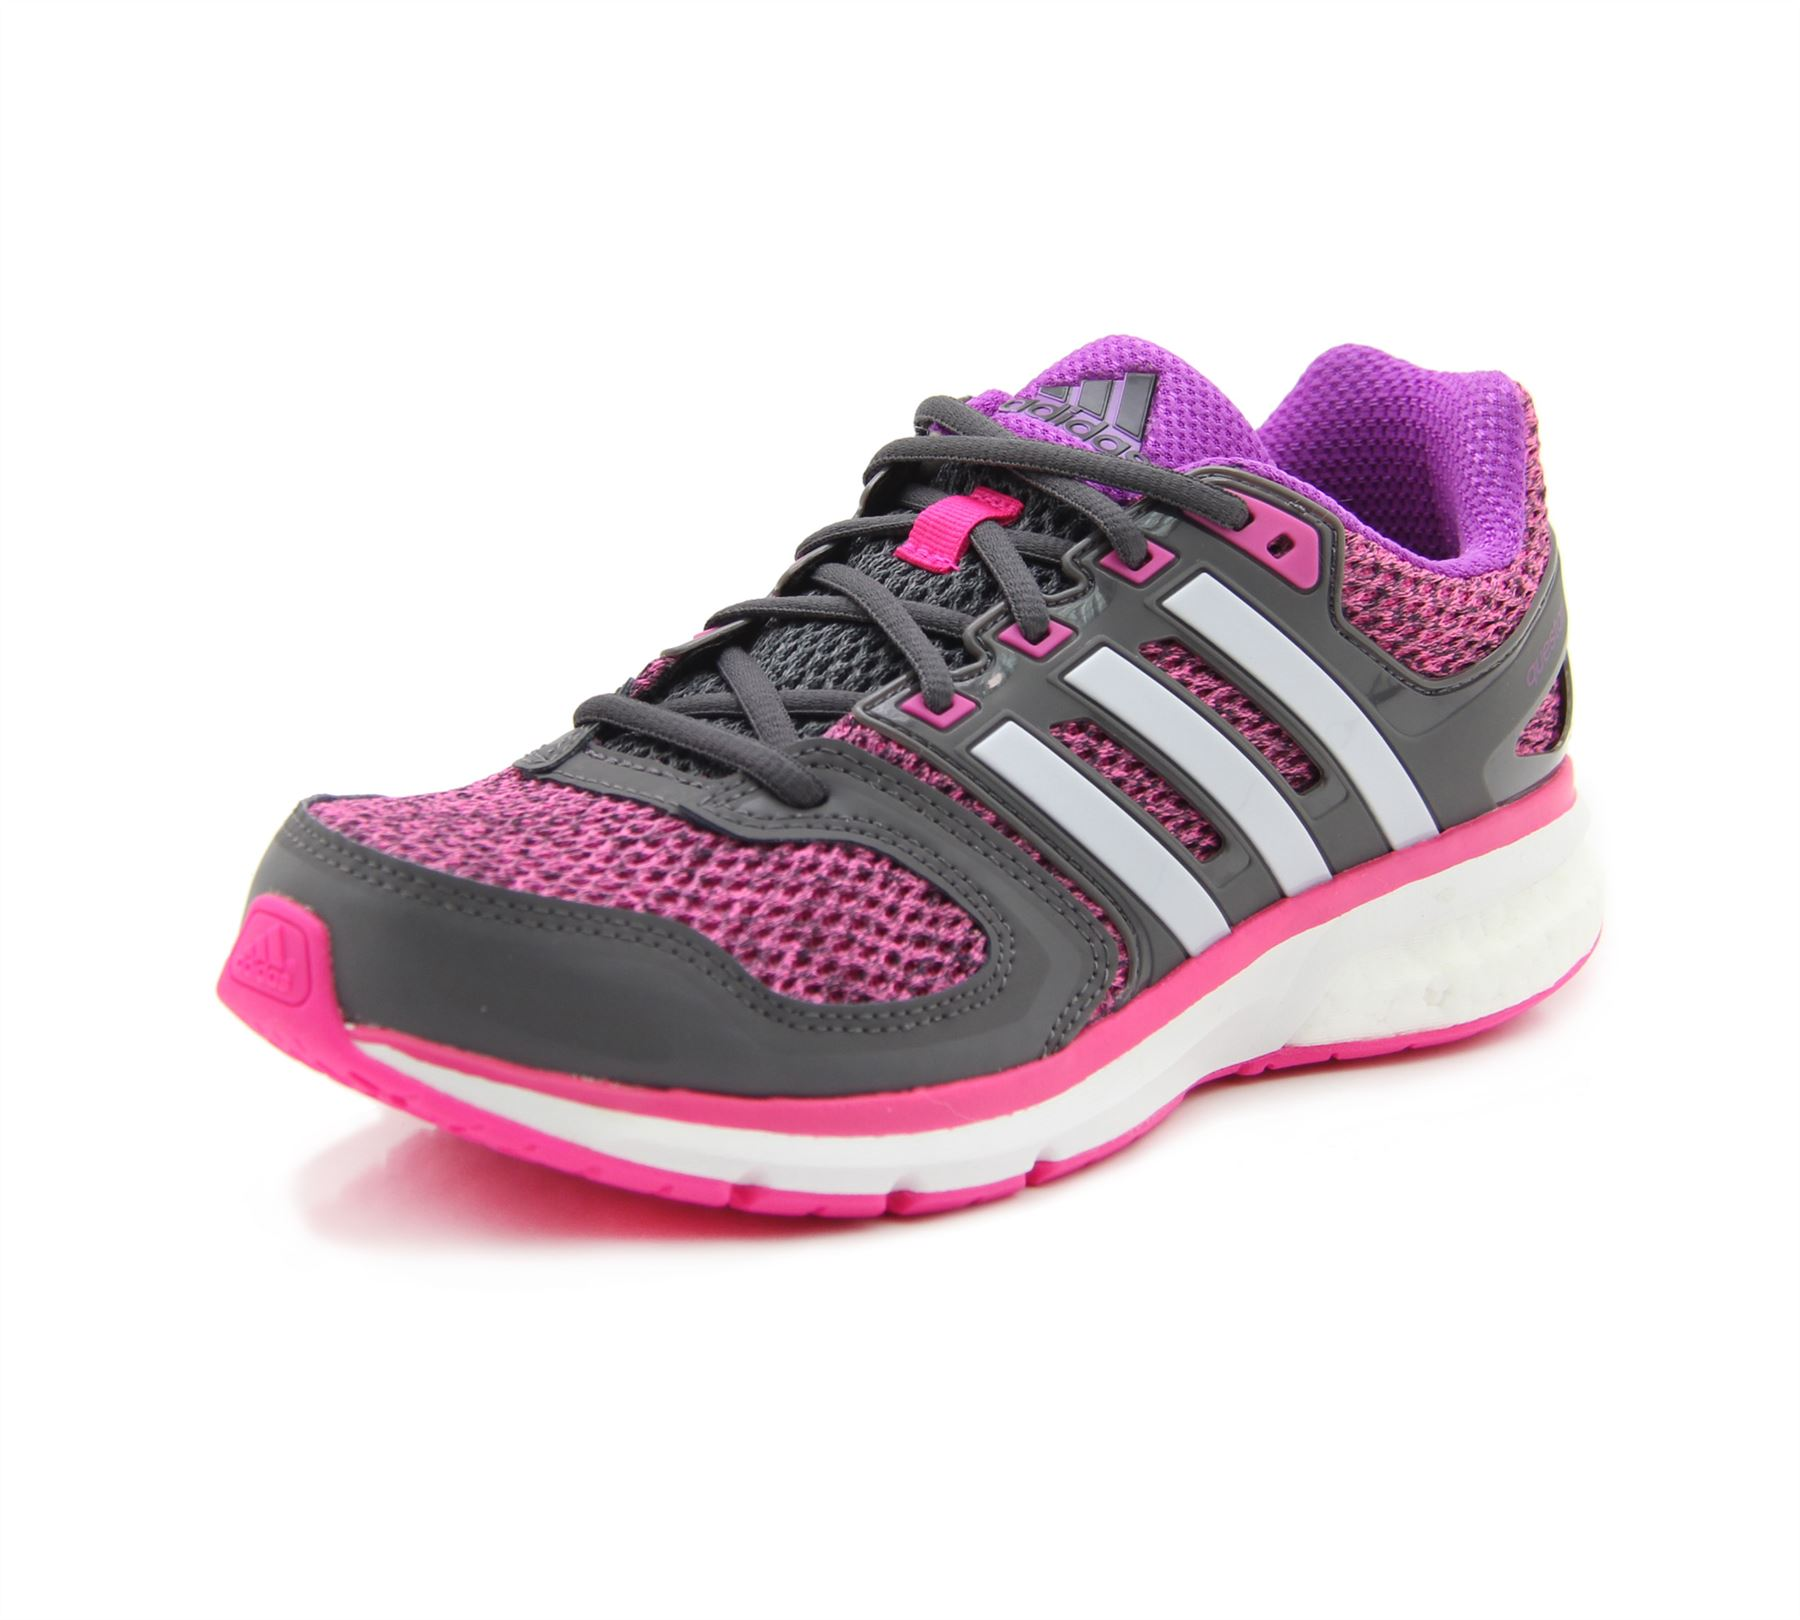 c327a777355b ... adidas Questar Boost Running Shoes Womens Pink Grey Purple Fitness  Trainers ...